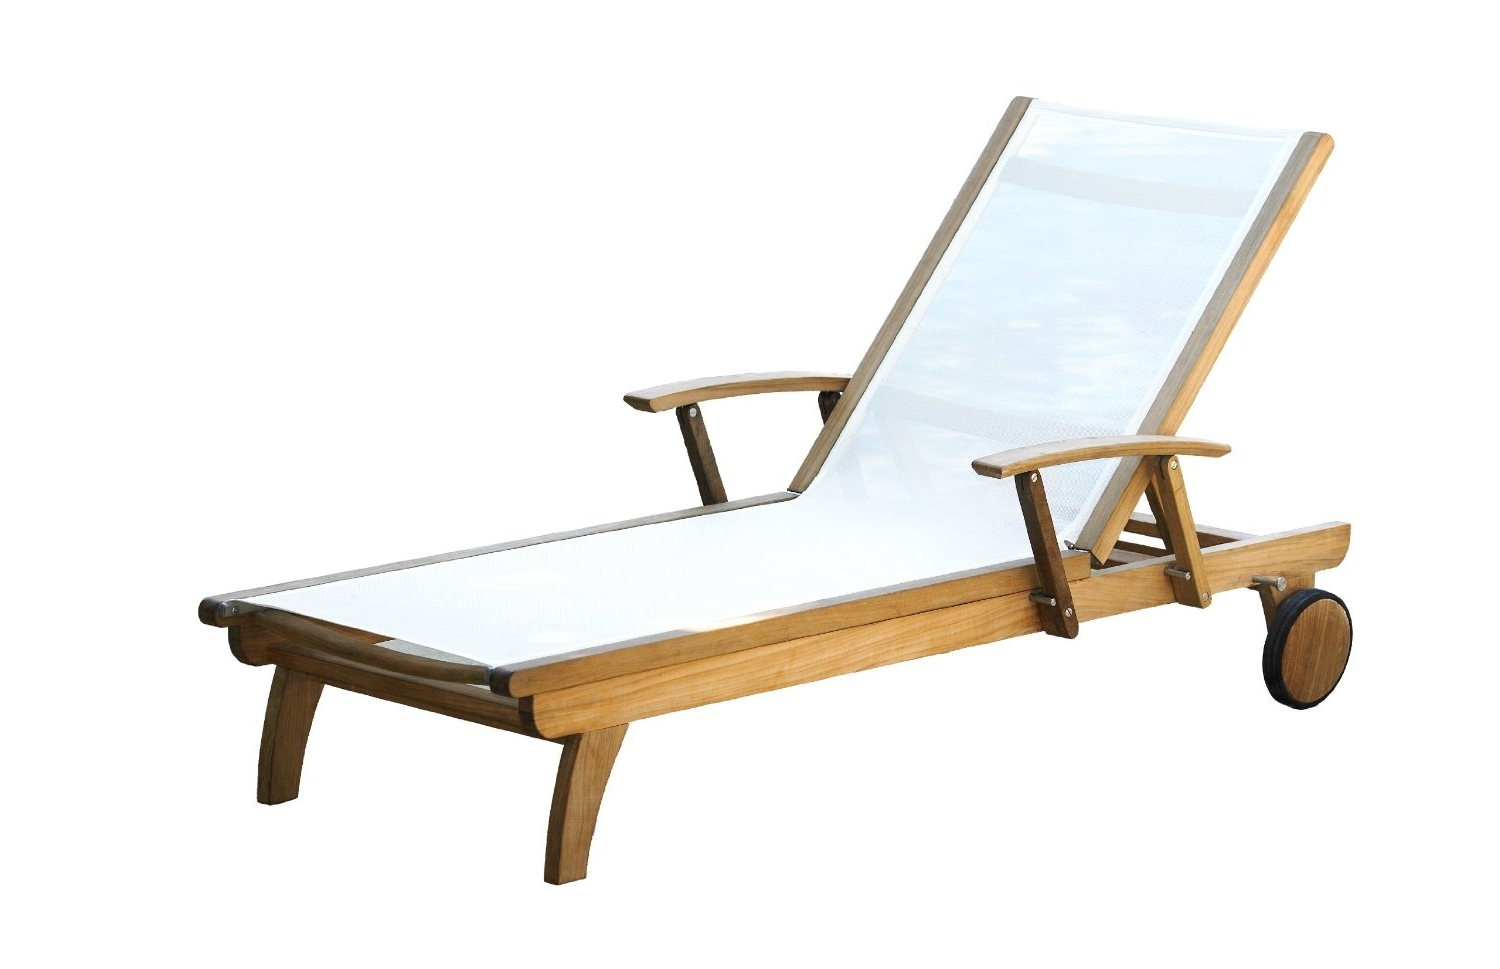 Teak Chaise Lounge Chair – Teak Patio Furniture World With Newest Chaise Lounge Sun Chairs (View 12 of 15)